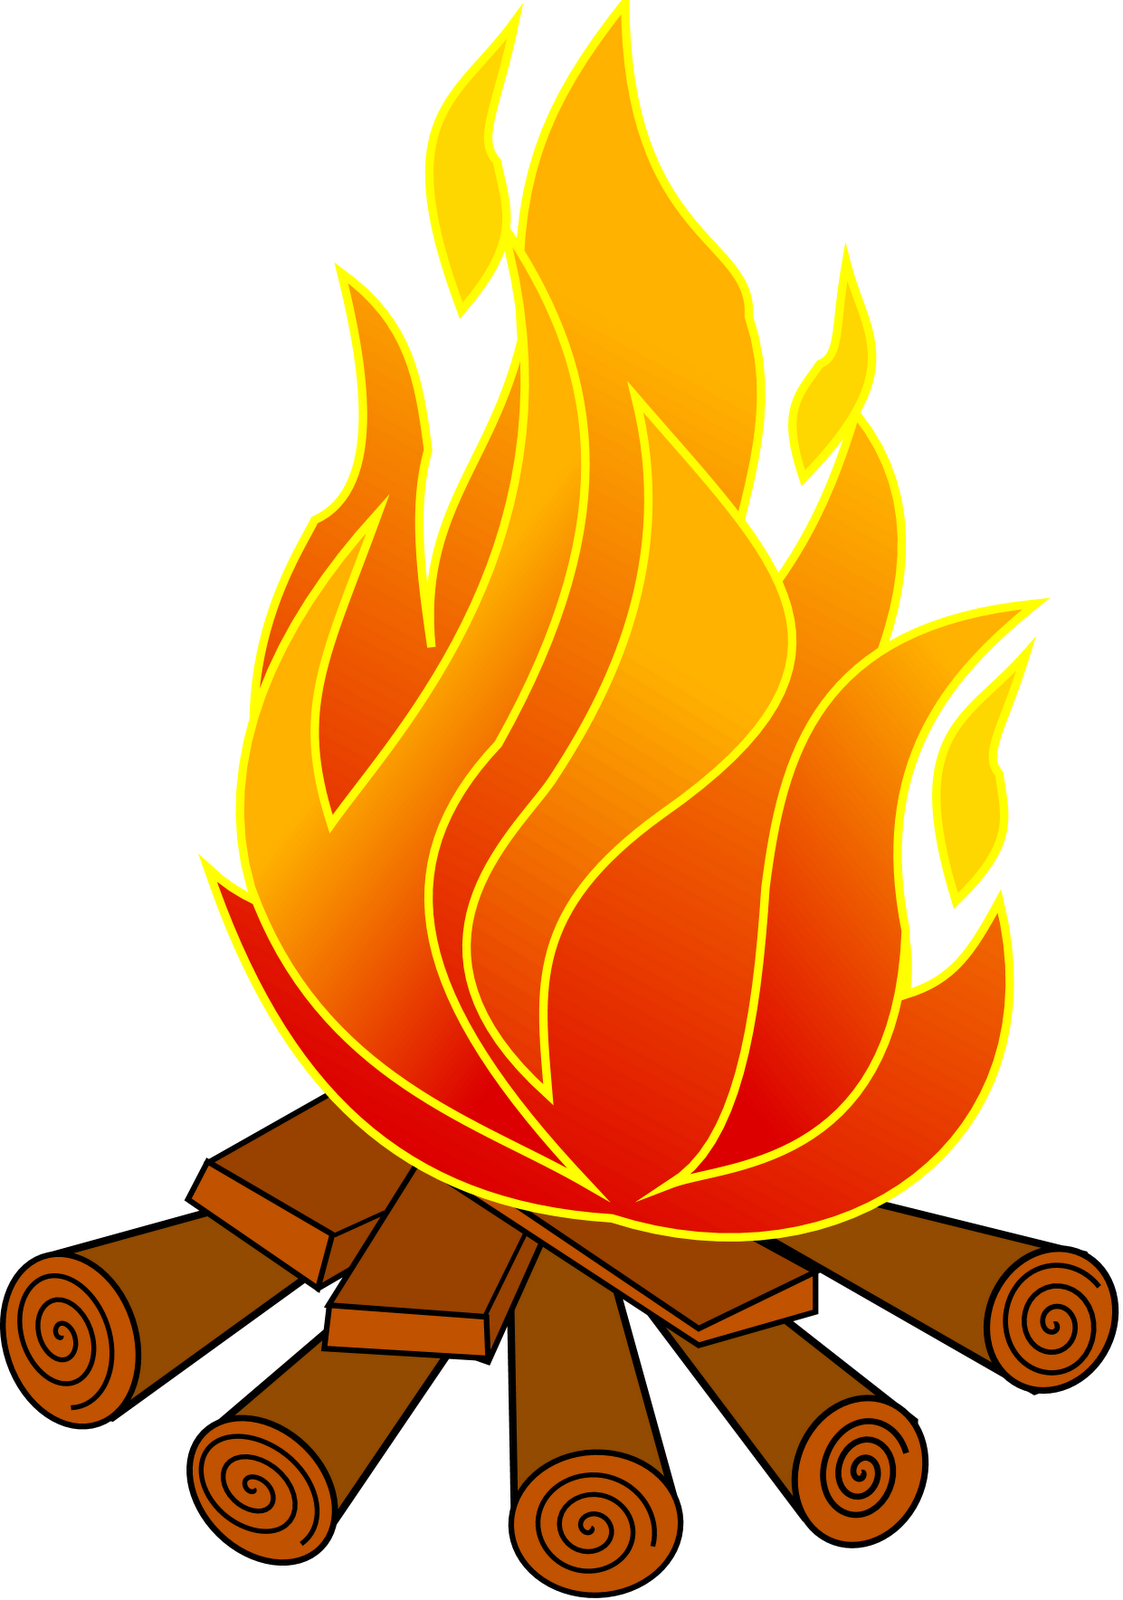 smores clipart camp fire flame #143374789